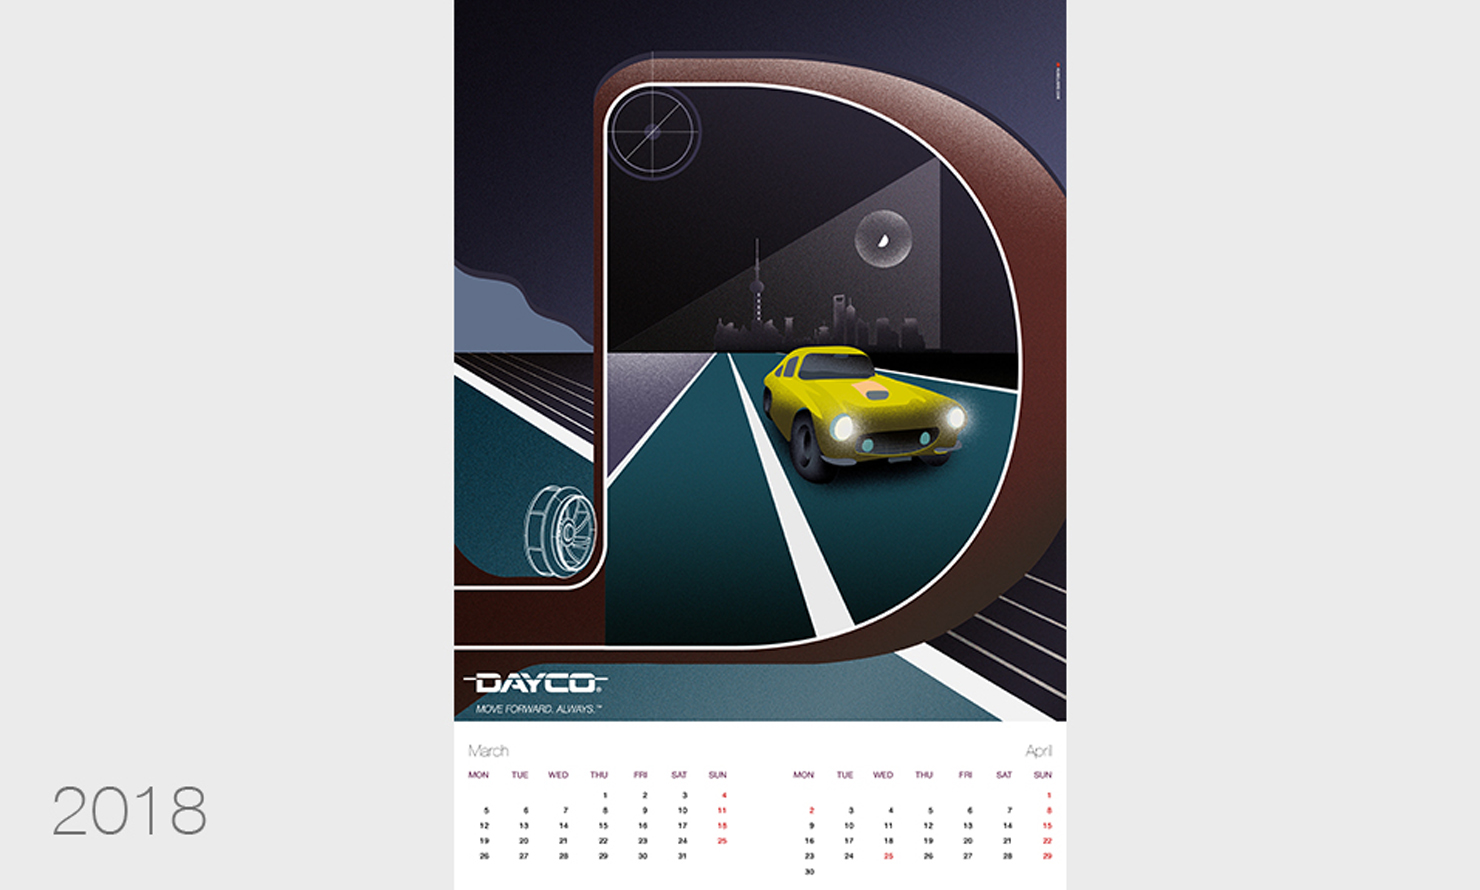 https://kubelibre.com/uploads/Slider-work-tutti-clienti/dayco-calendario-2018-2.jpg